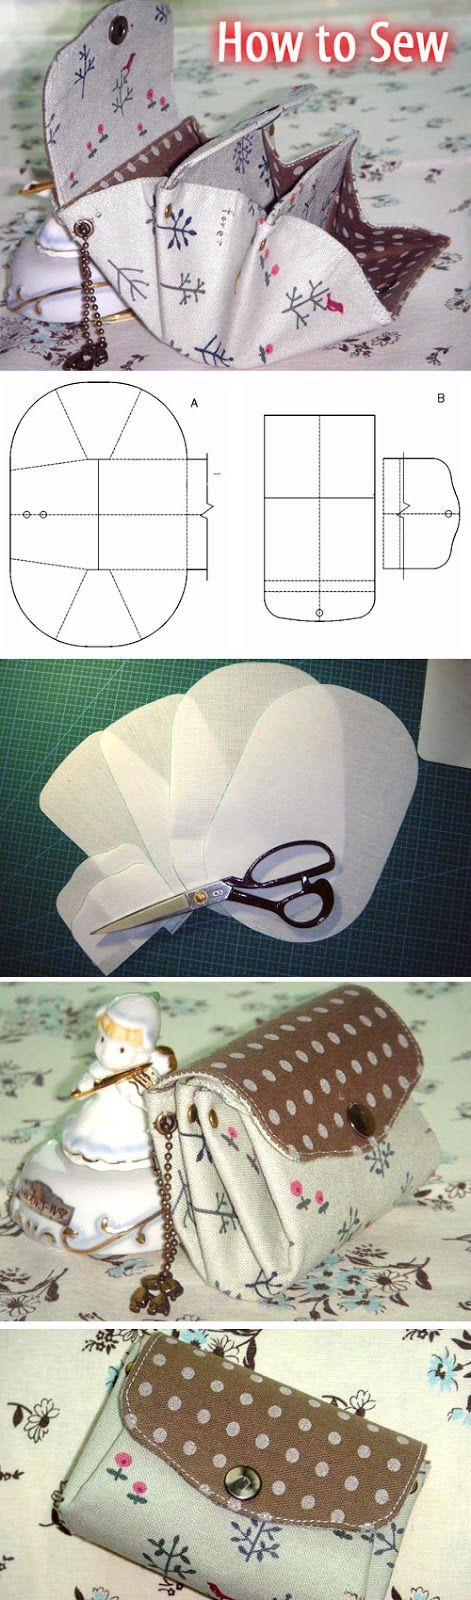 Accordion Folded Wallet. Free Sewing Pattern and Tutorial. Step by step DIY http://www.handmadiya.com/2016/02/folded-accordion-wallet-tutorial.html: